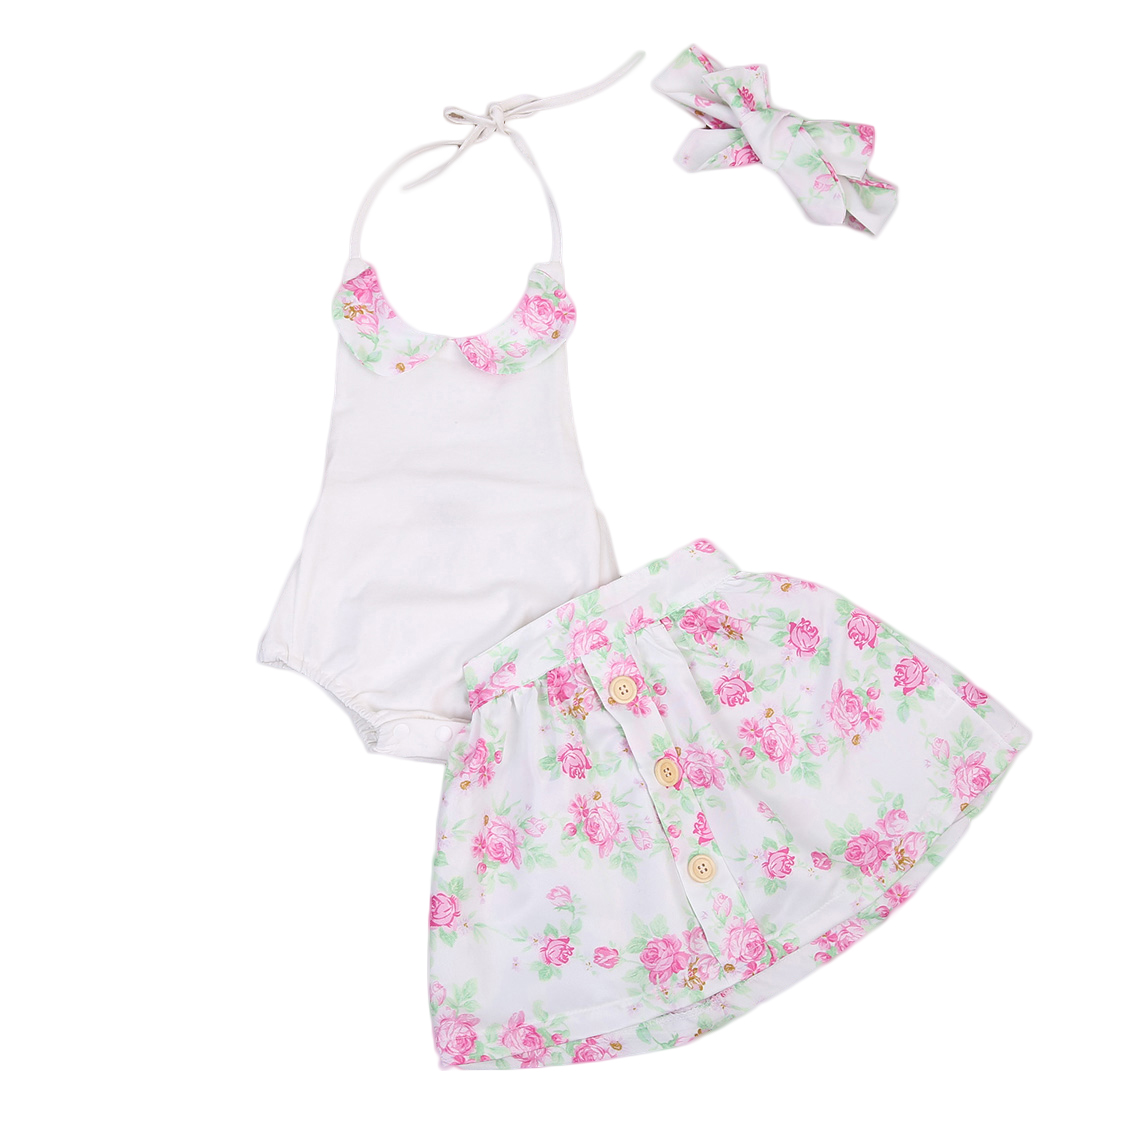 New Style Neborn Baby Girls Clothes Summer Backless Sleeveless Romper Headband Outfits Baby Clothing Set Sunsuit